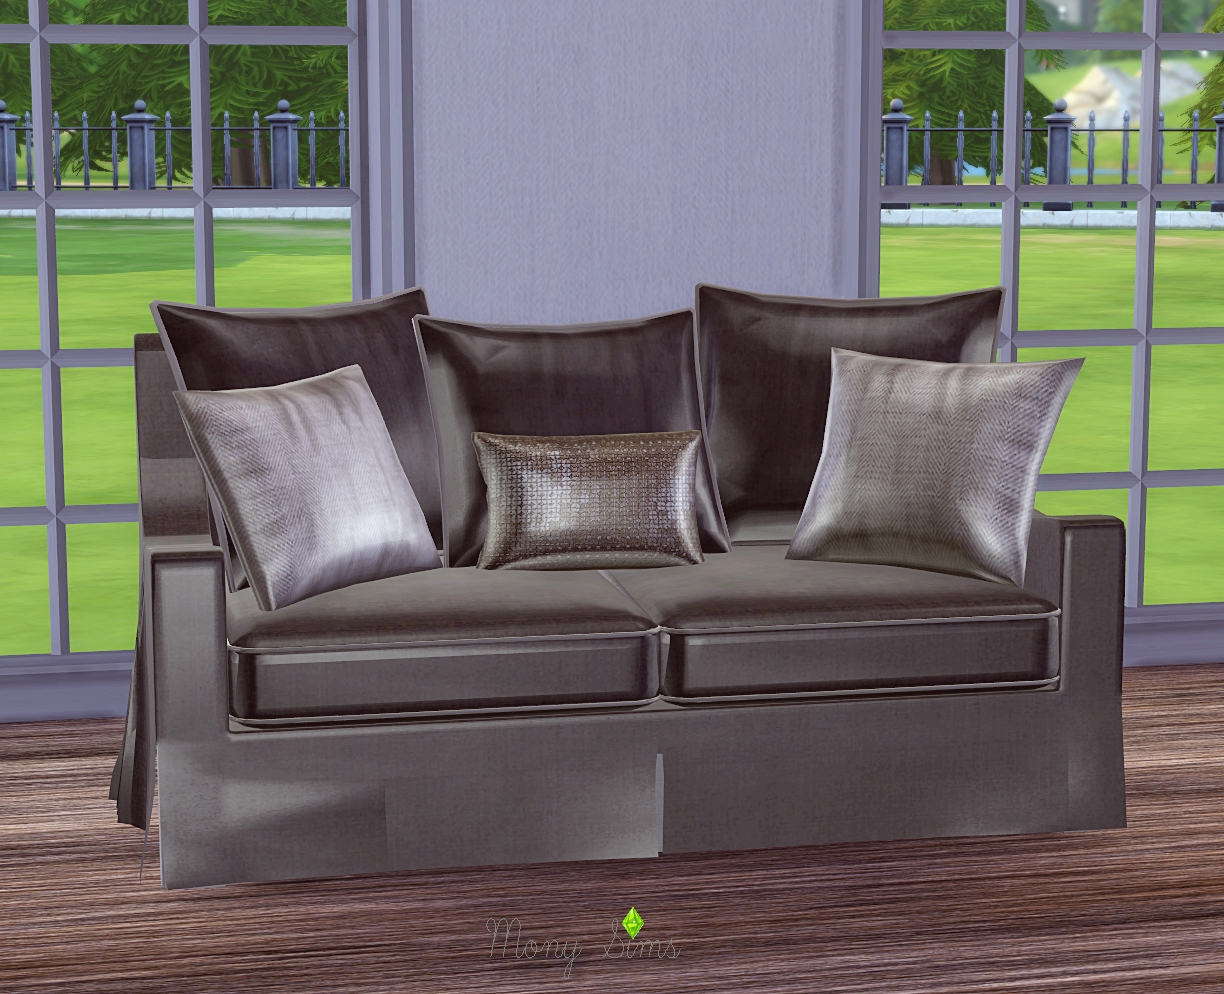 TS2 Cassandre Love Seat and Pillows Conversions by Mony Sims